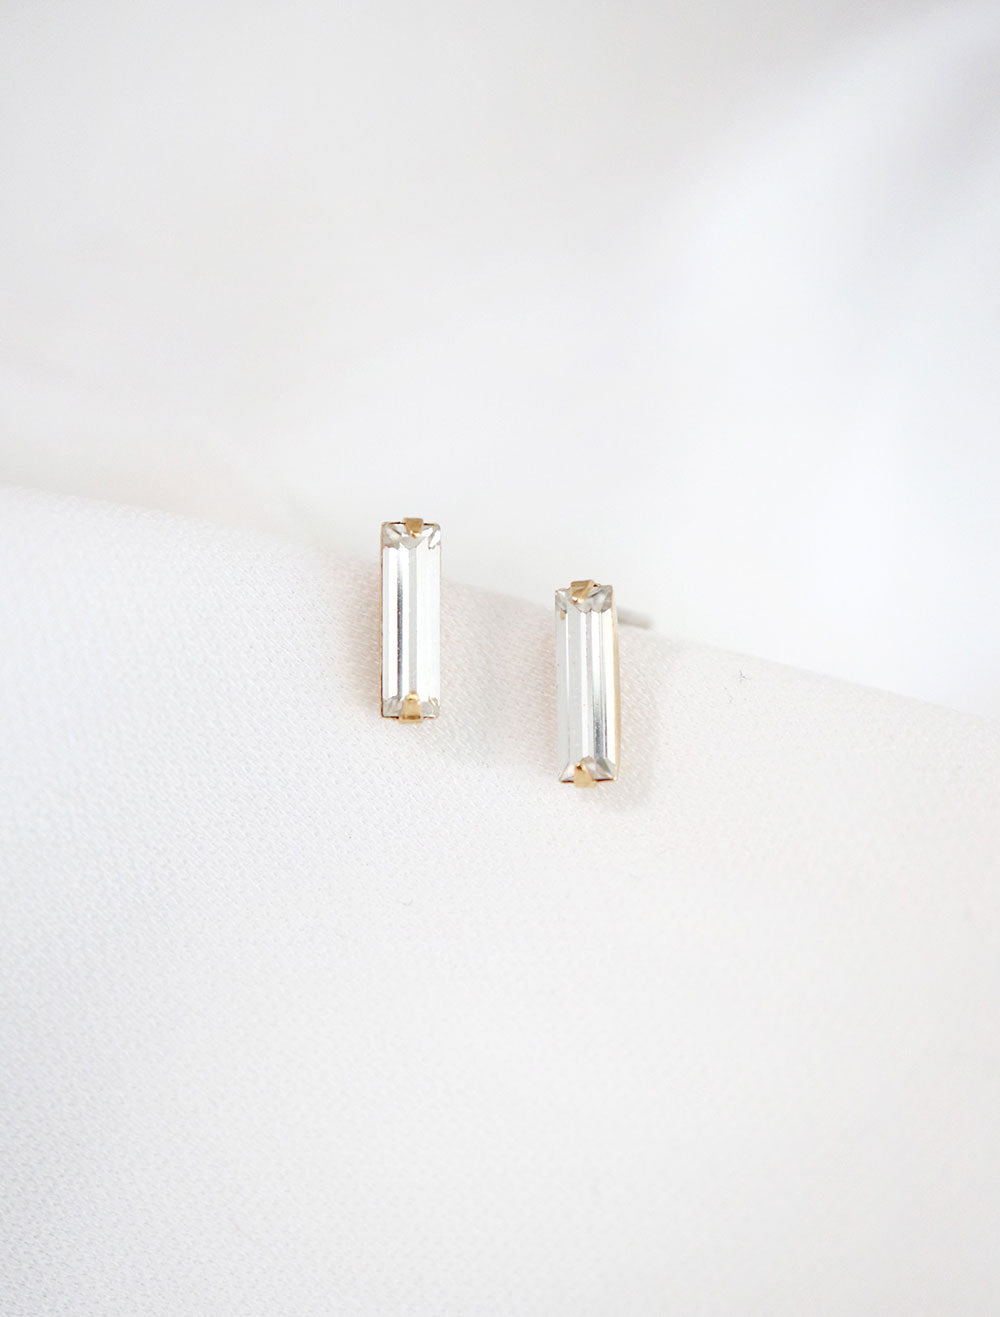 clear baguette crystal stud earrings